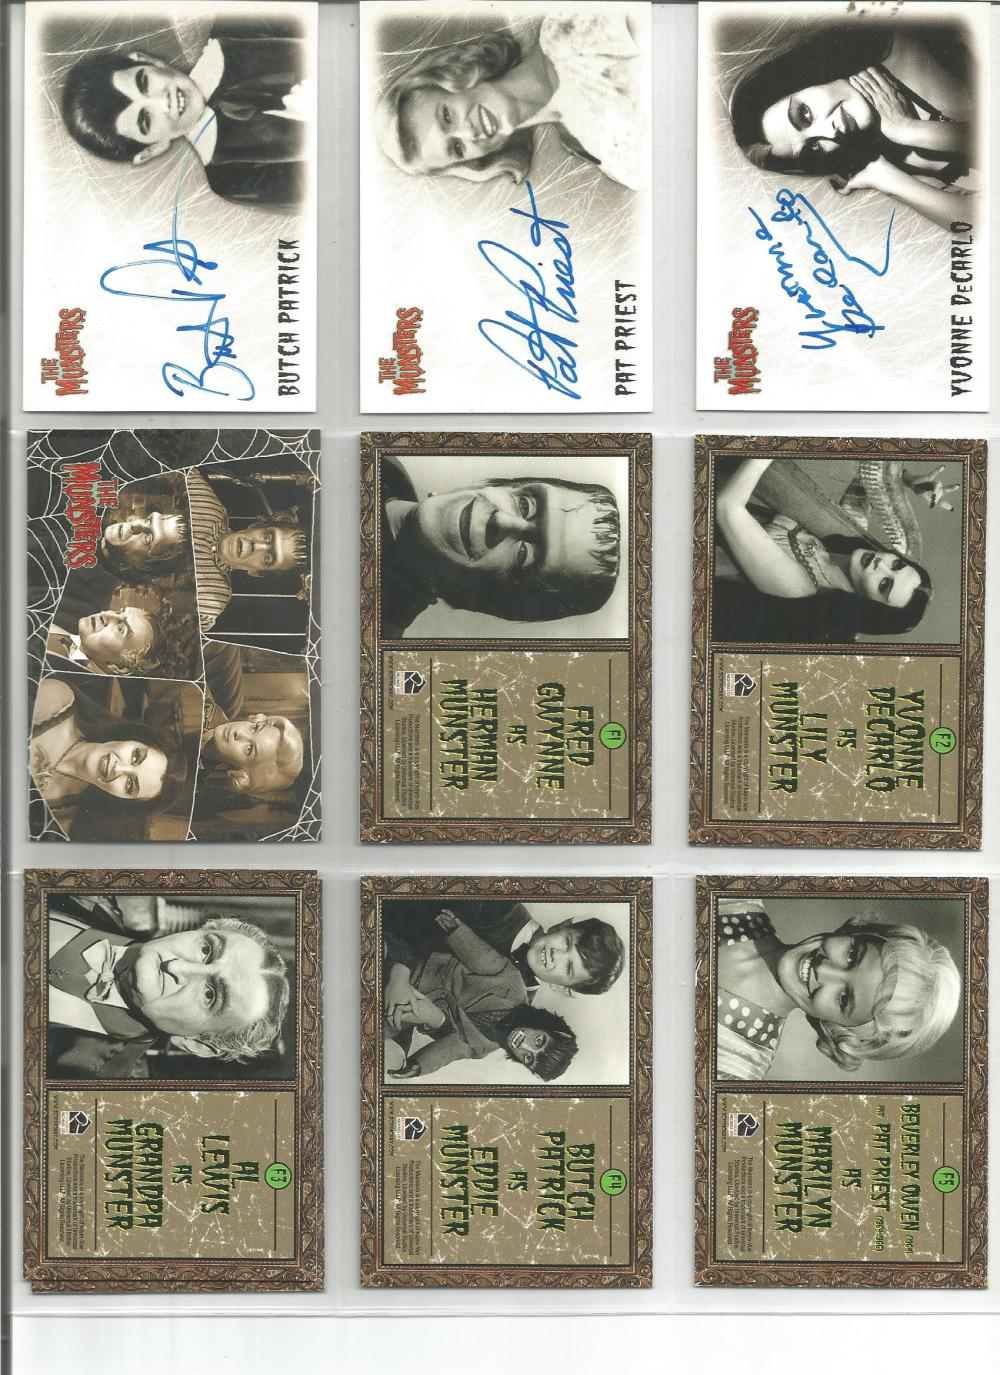 Munsters signed trading card collection. Nine cards three are signed by Butch Patrick, Pat Priest,